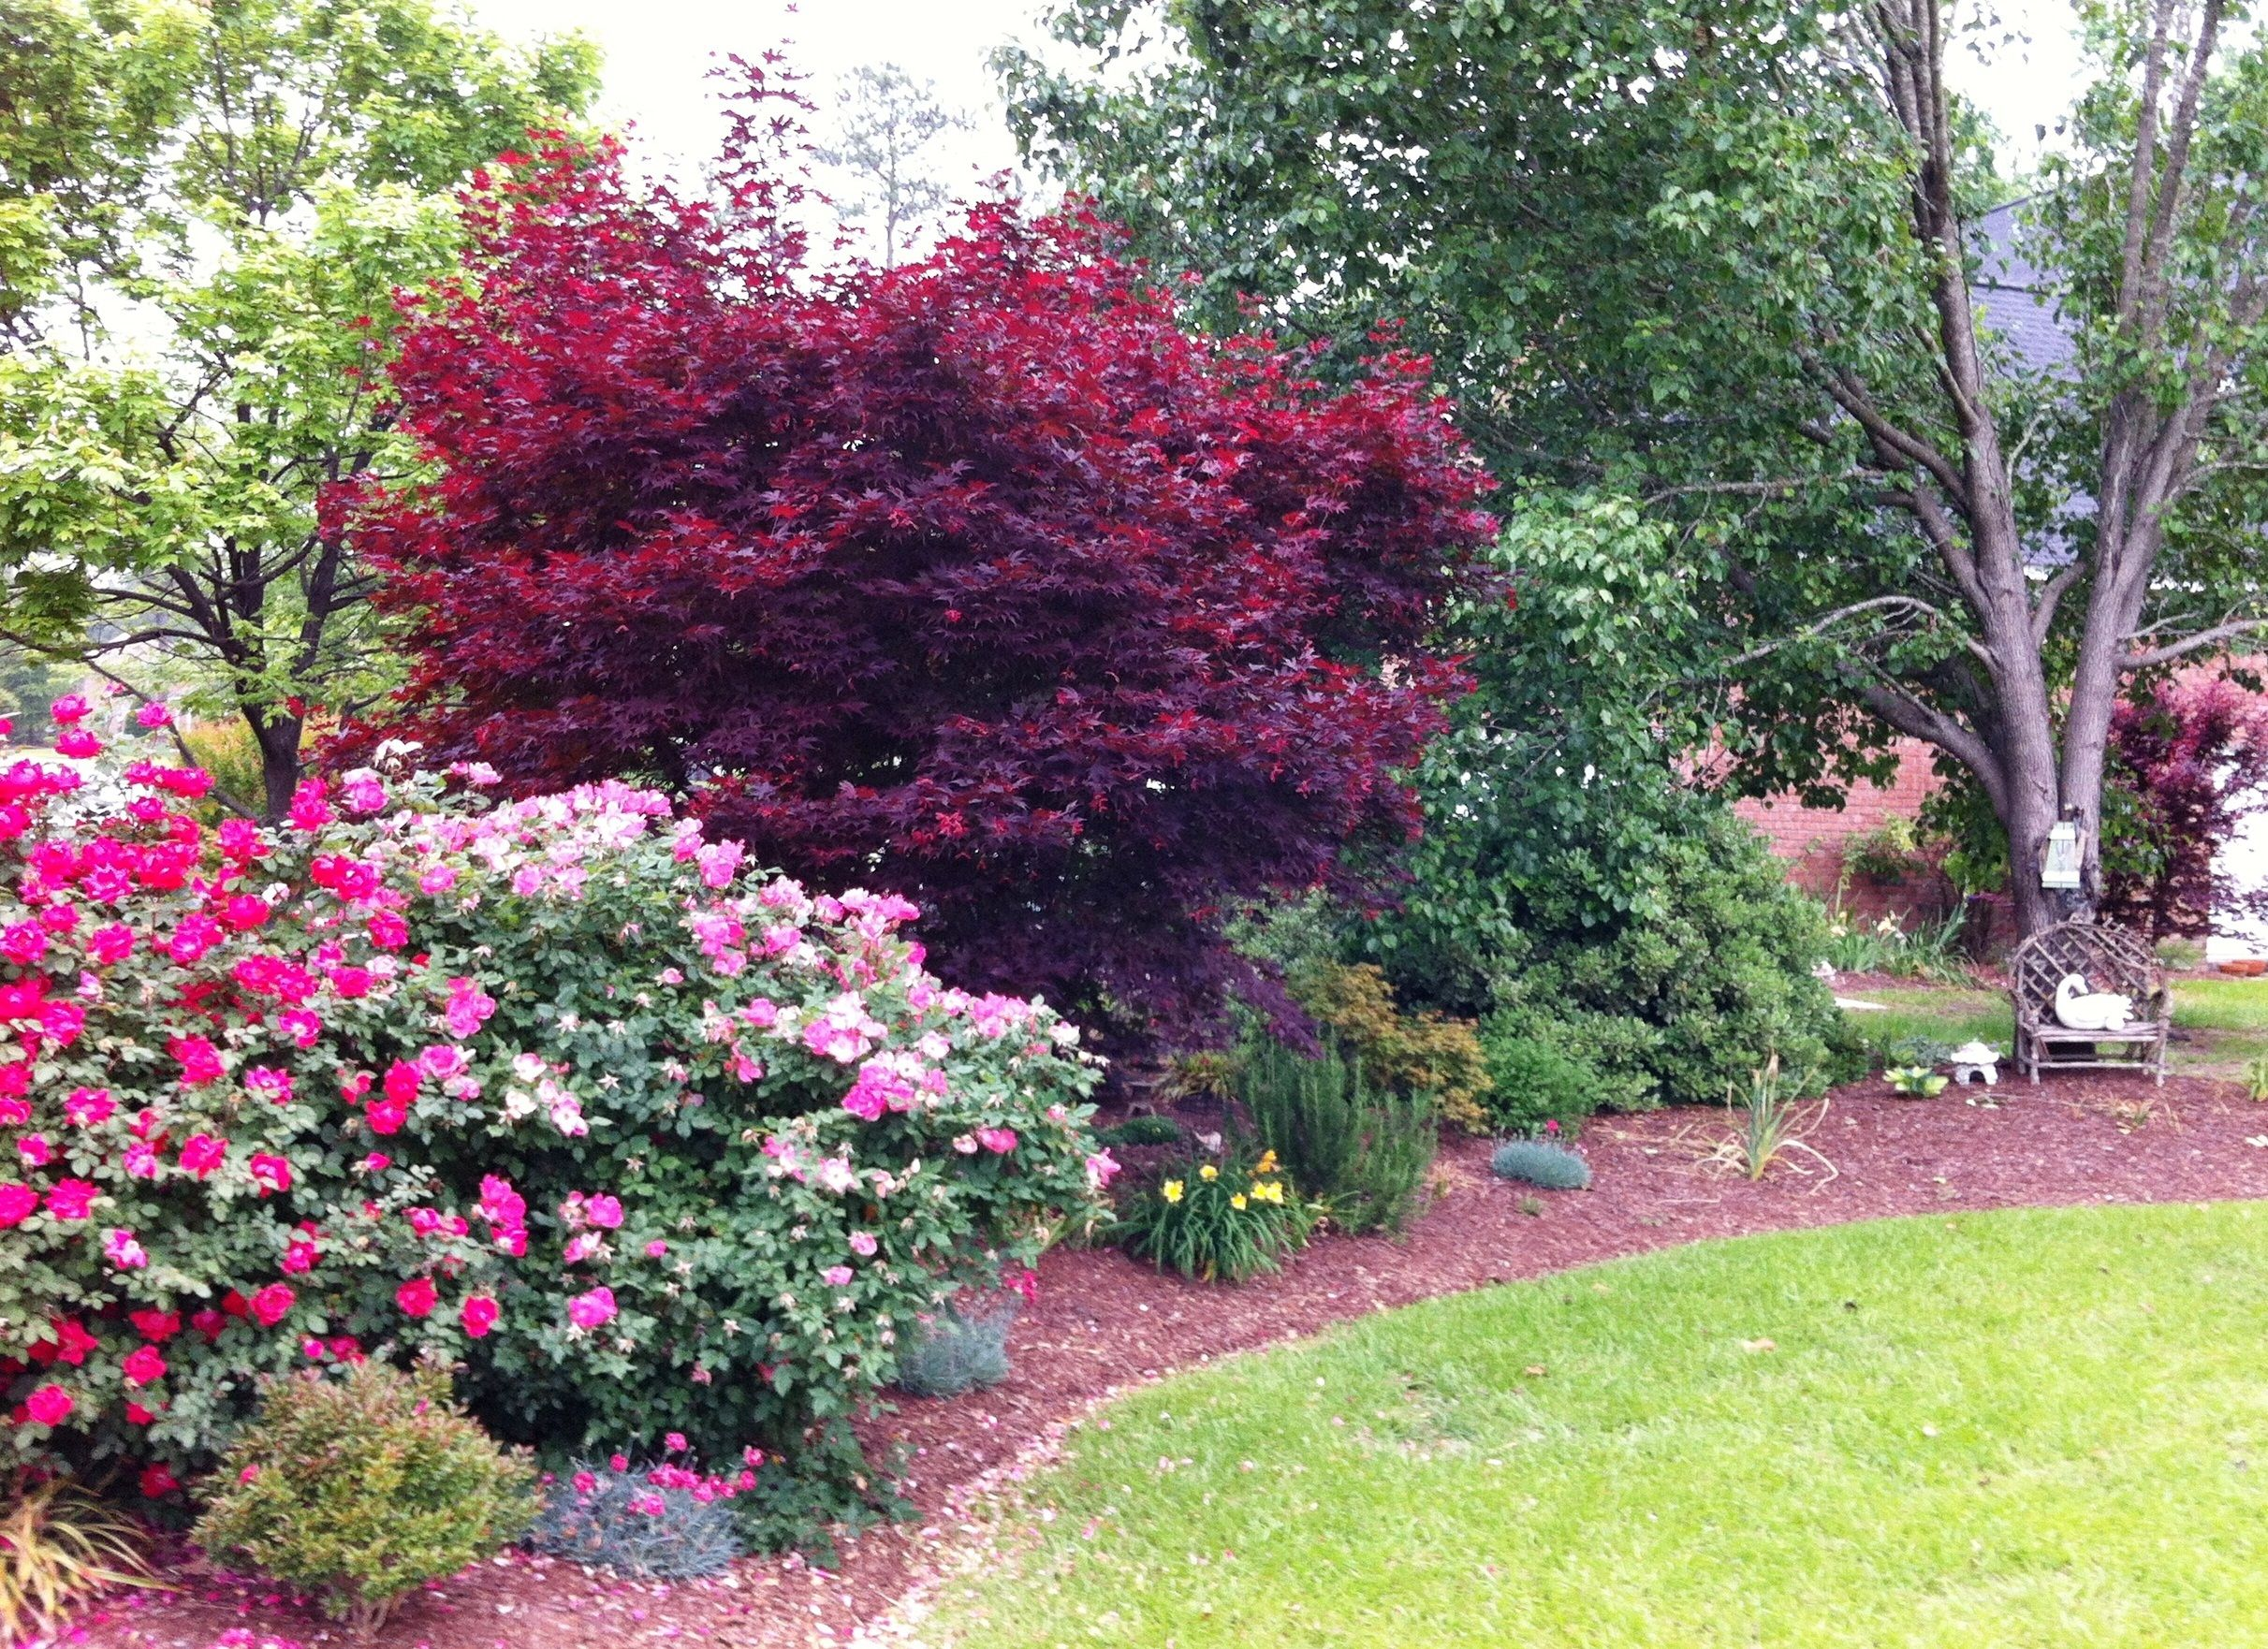 Left front island -- lots of Knockout roses in bloom and a red Japanese  maple